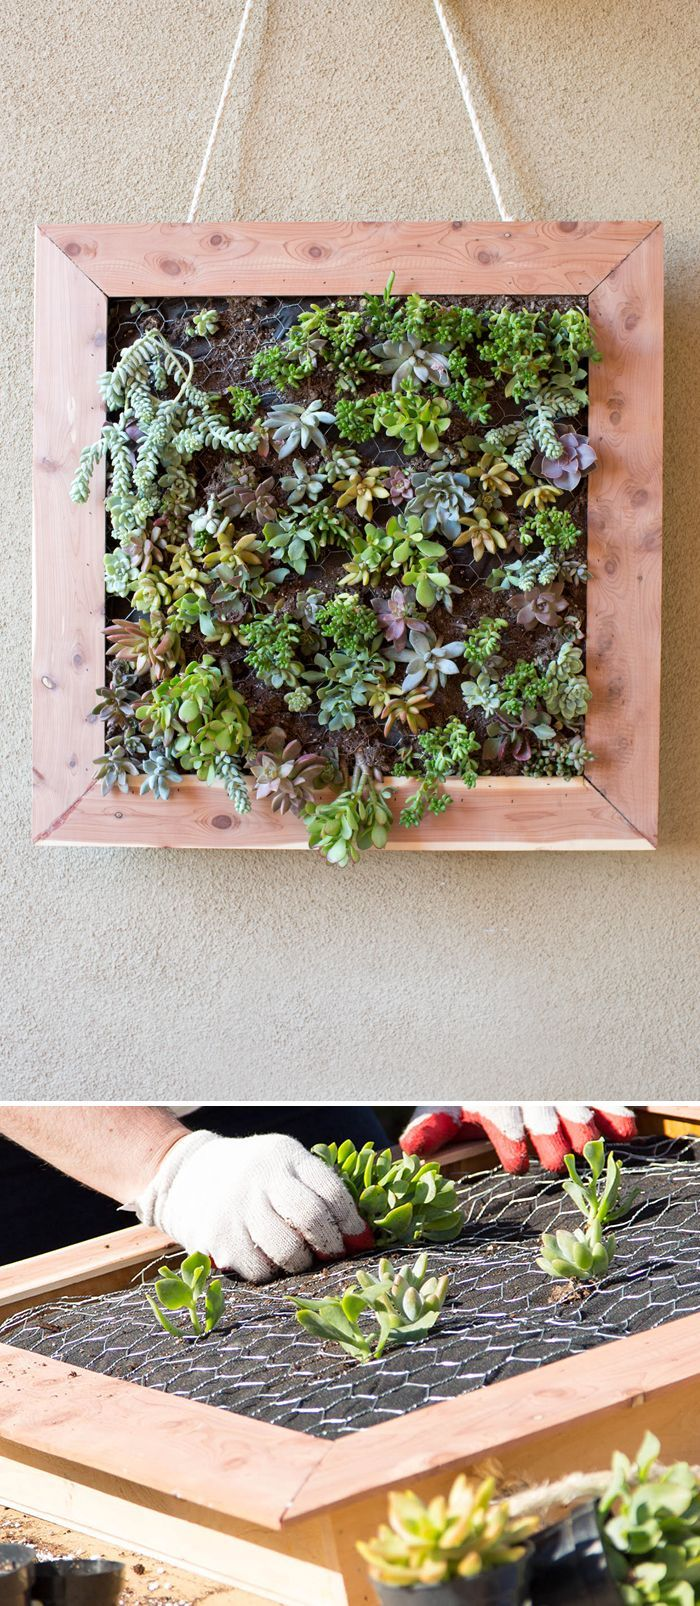 Diy garden wall art - Turn Plants Into Art You Can Hang From Your Wall With This Diy Vertical Succulent Garden